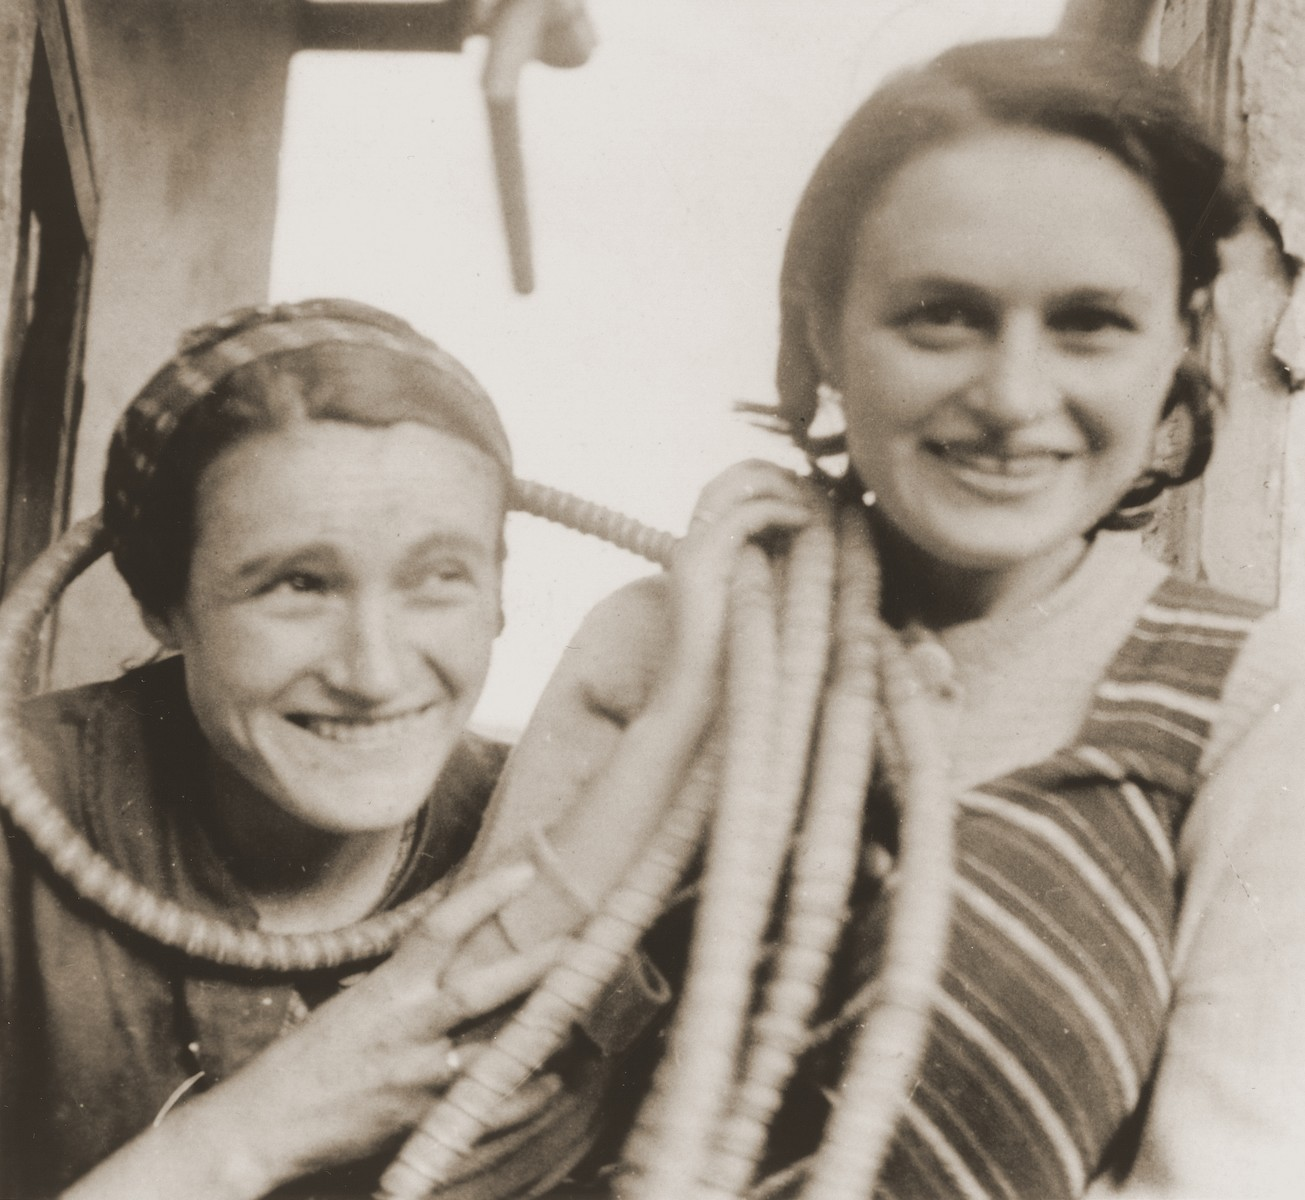 Austrian Jewish refugee sisters in La Paz, Bolivia.  Pictured are Rose Spitzer (left) and Ella Becker (right) with electrical cable.